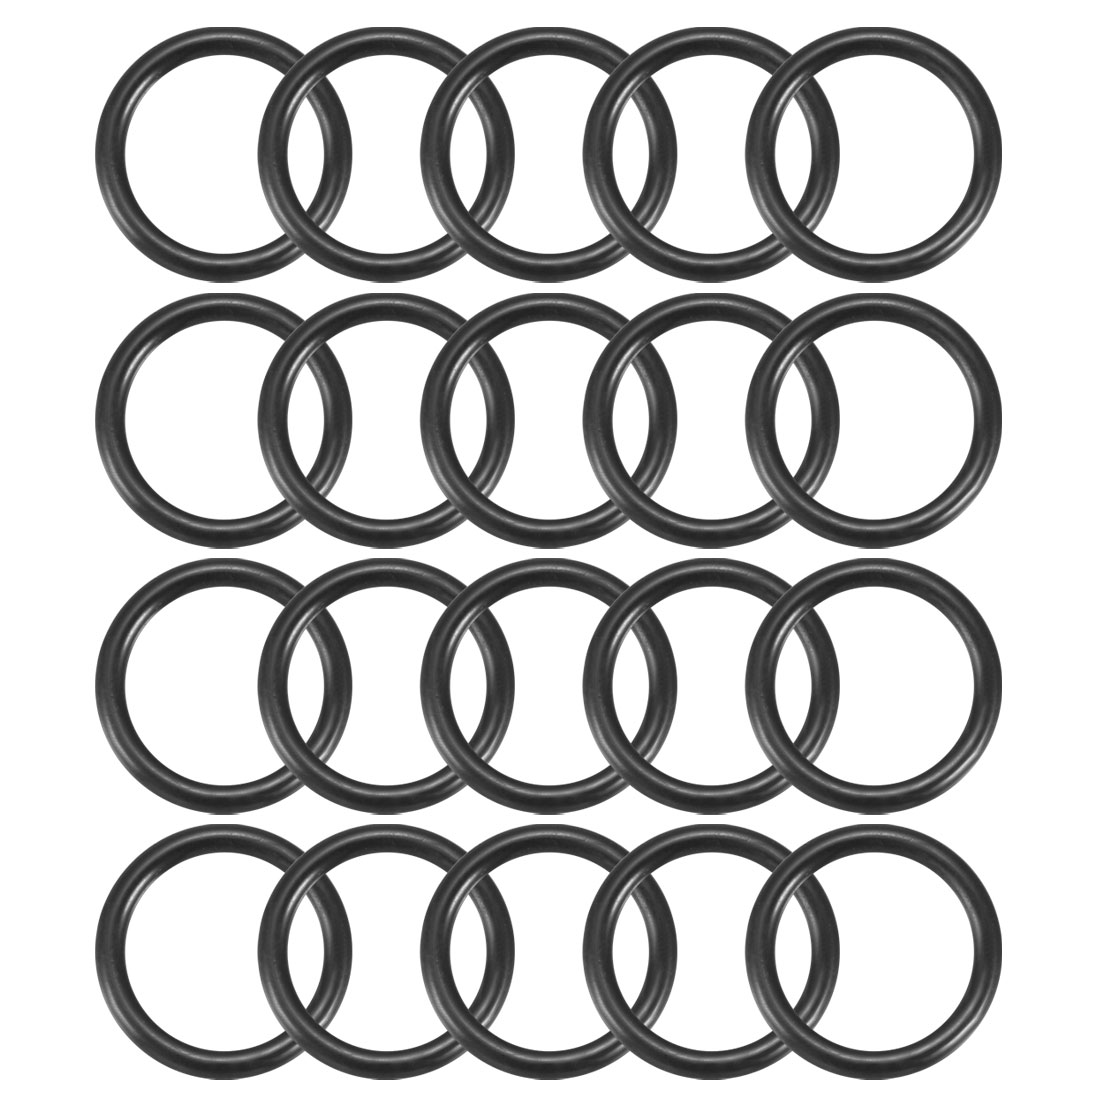 20Pcs Black 16mm Dia 2mm Thickness Nitrile Rubber O Ring NBR Sealing Grommets